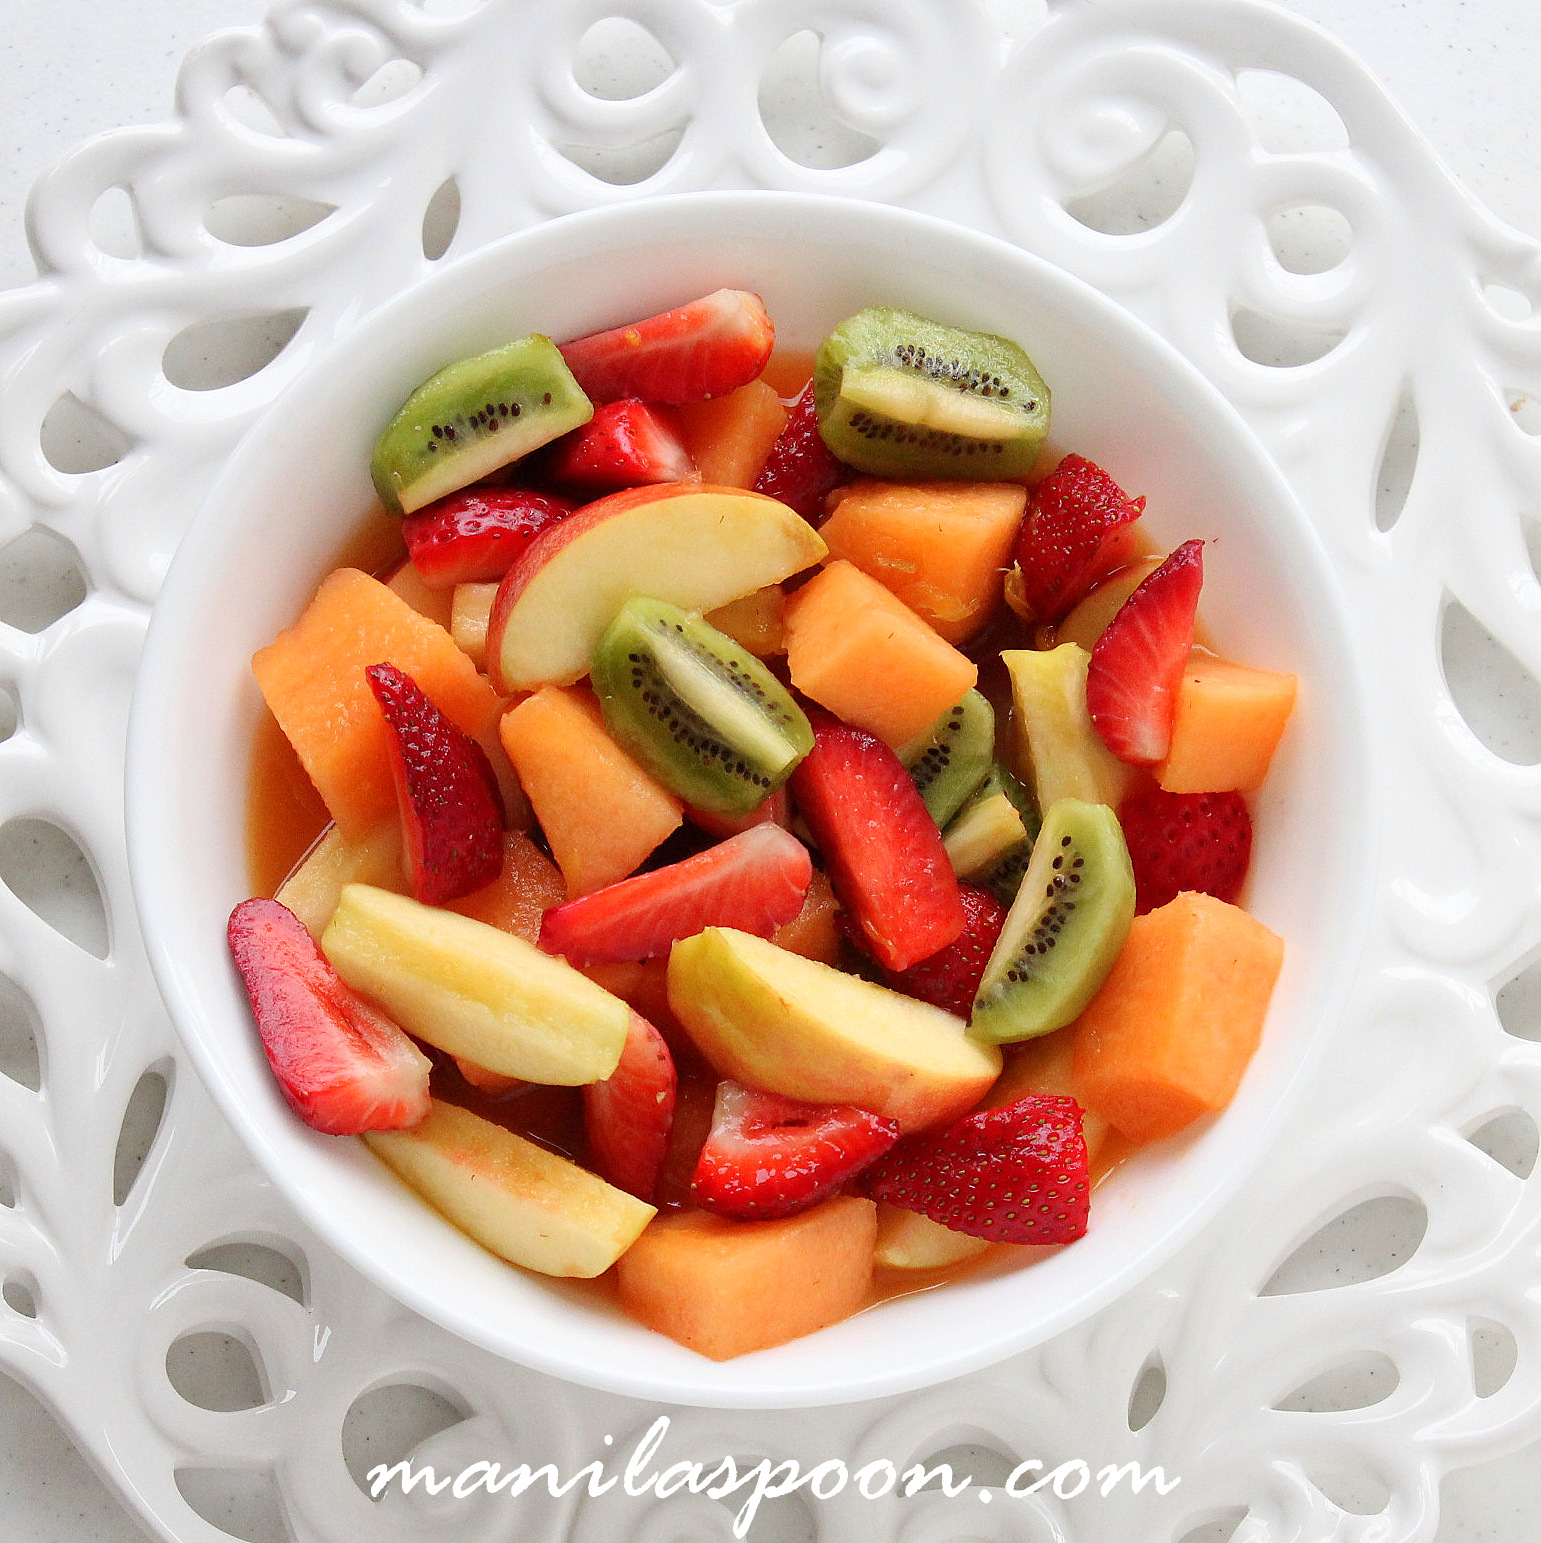 This light and healthy Italian fruit salad is the delicious way to take in all that nutrients from your favorite fruits and berries. So refreshingly good, it's the perfect summer treat!